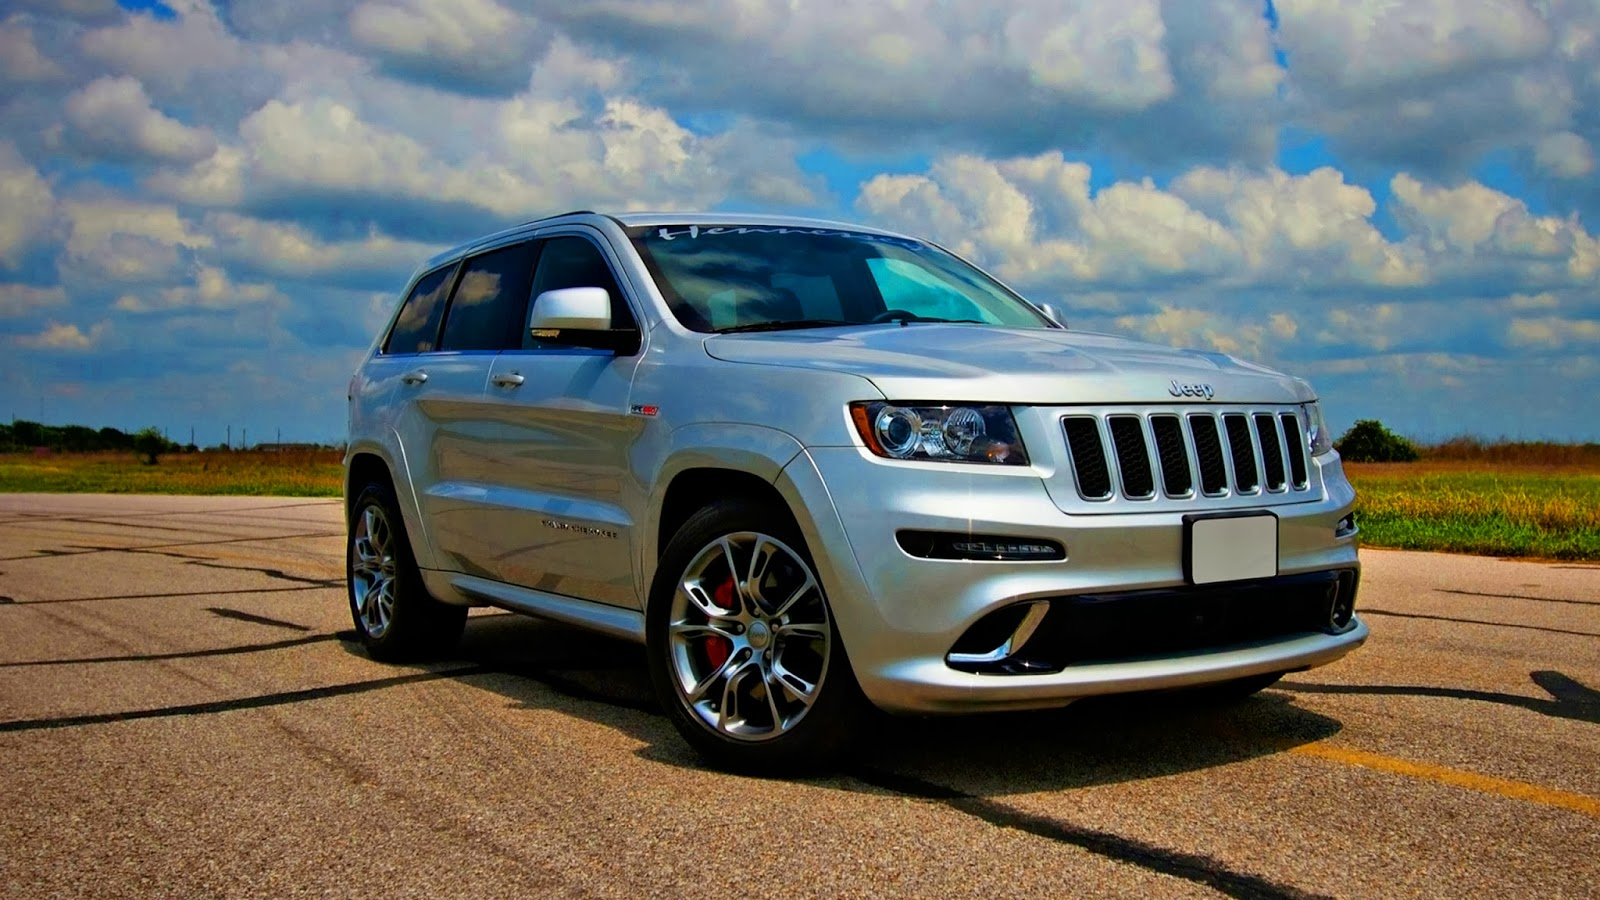 from hennessey press release hpe650 supercharged jeep srt8 power 652 bhp 5 700 rpm hpe650 supercharged jeep srt8 upgrade includes